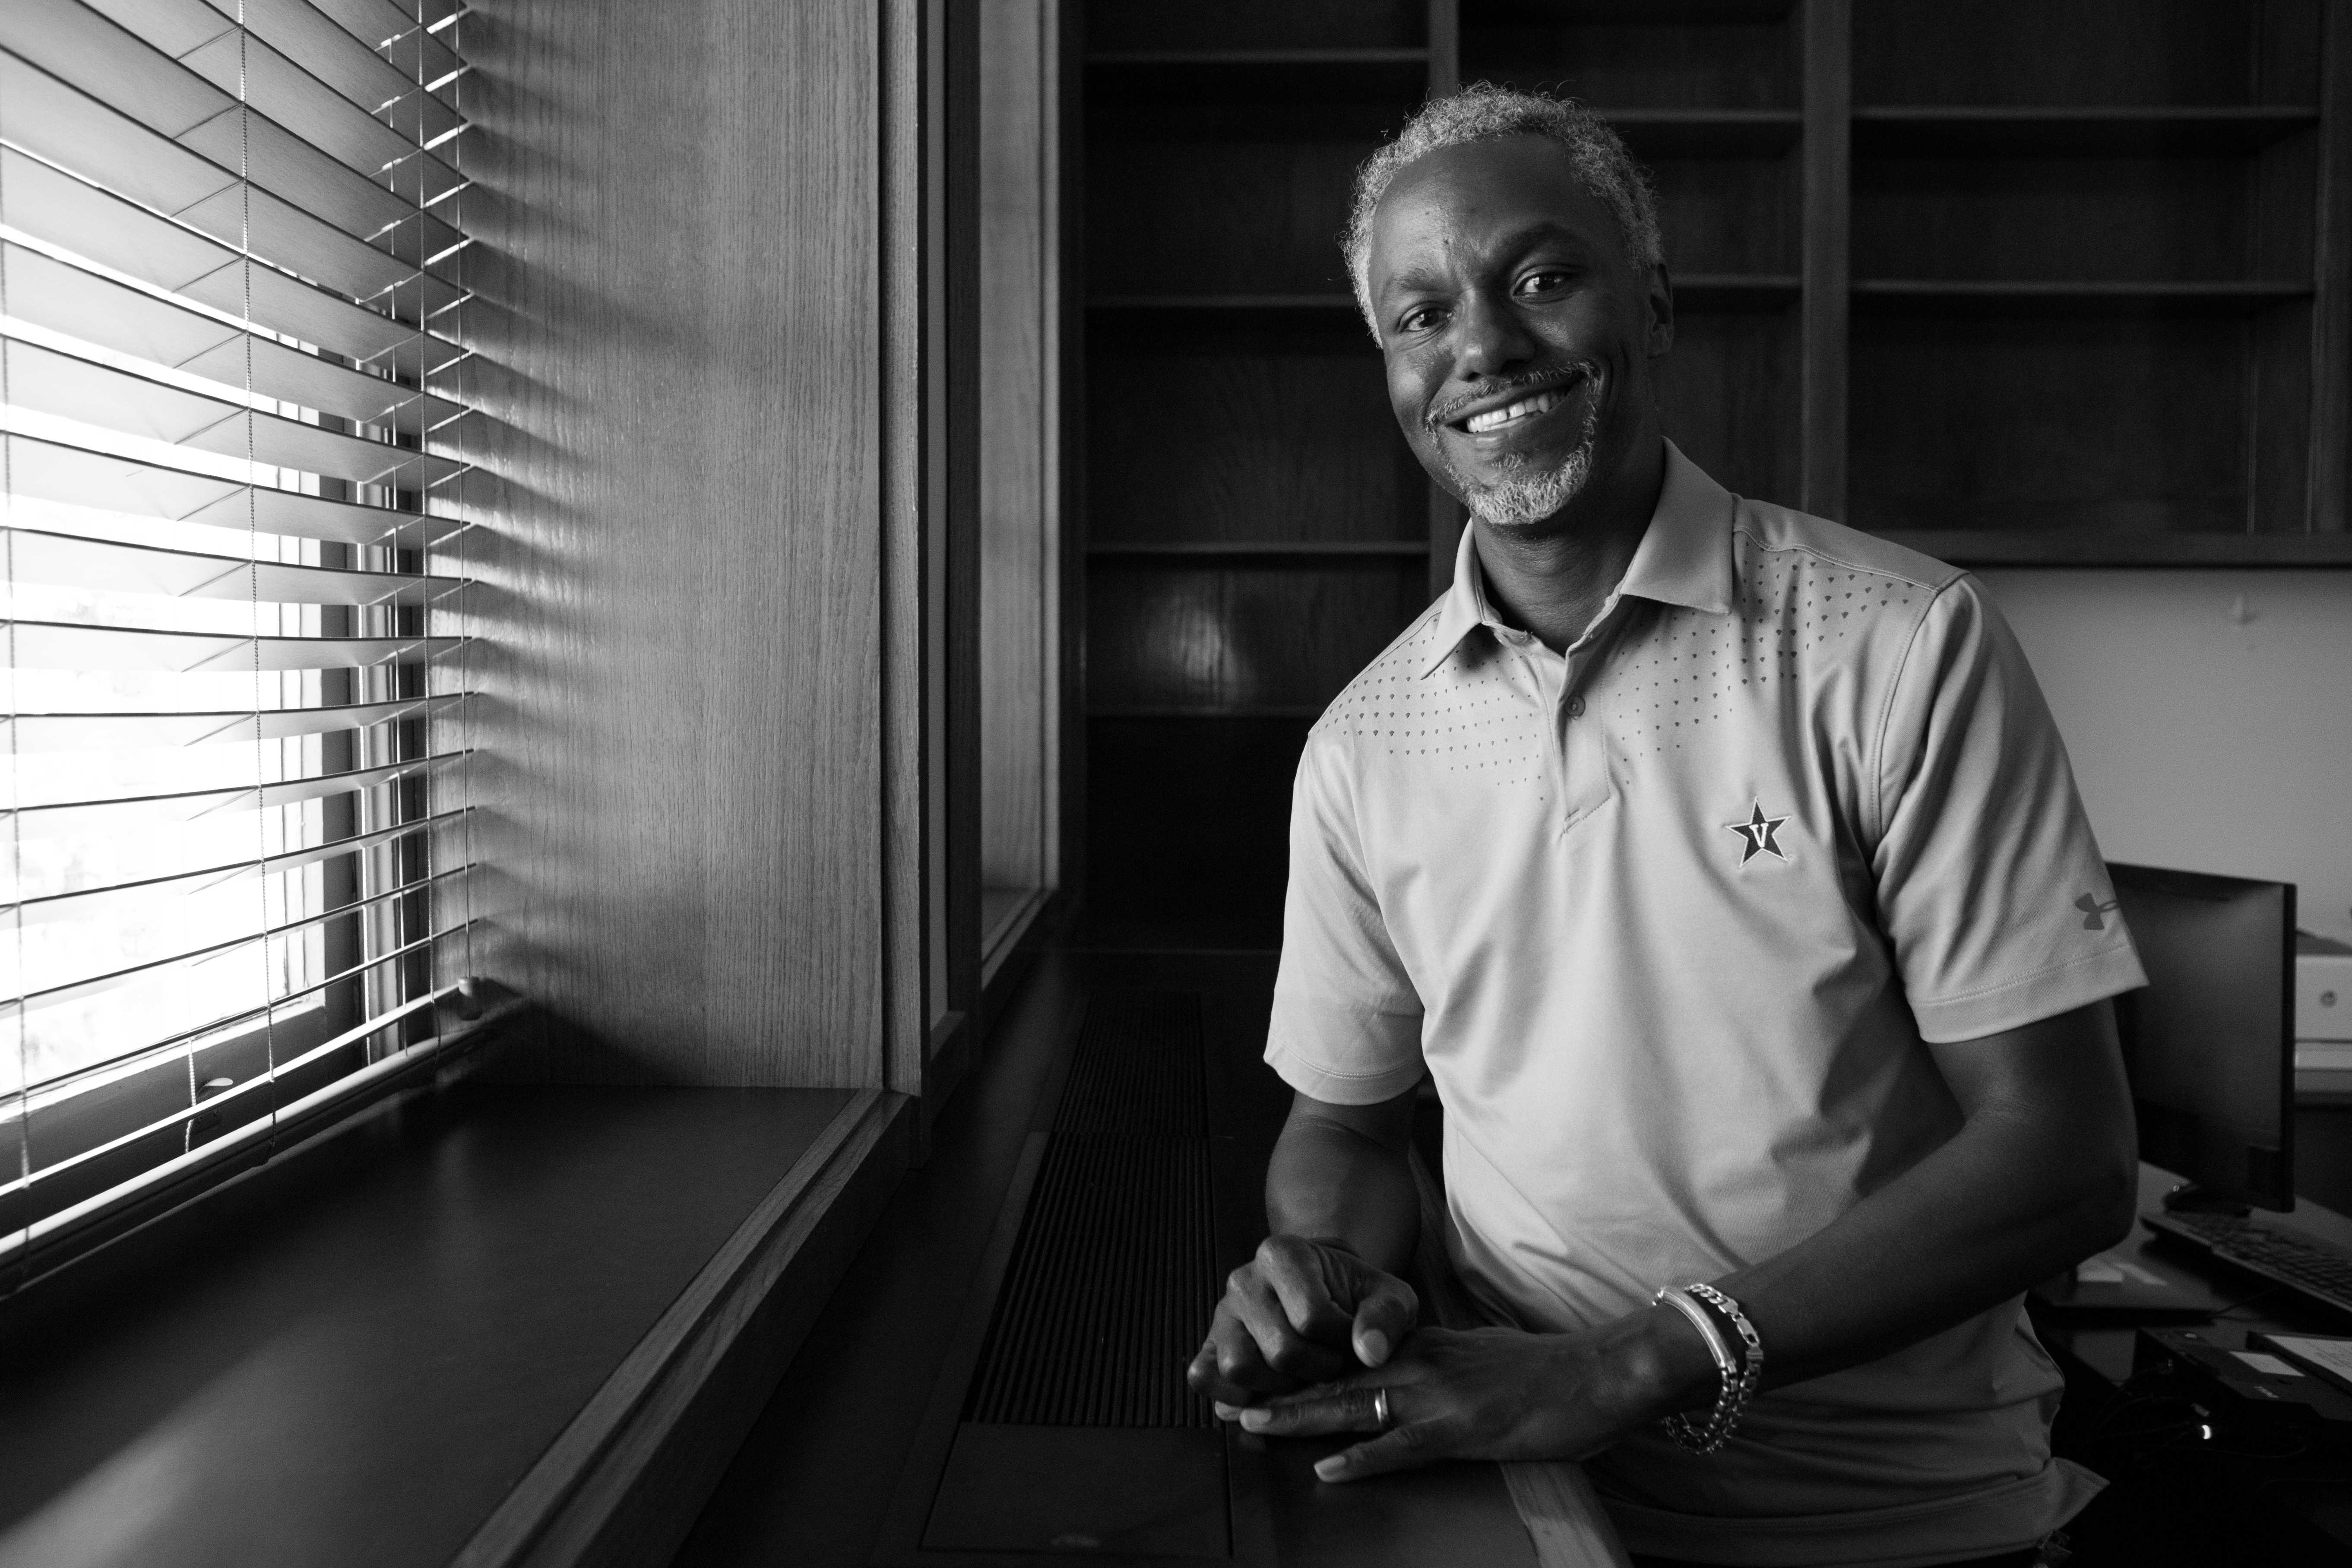 Interview with the Vice Chancellor of Equity, Diversity & Inclusion on his first day at Vanderbilt - Friday, August 17, 2018. (Photo by Claire Barnett)